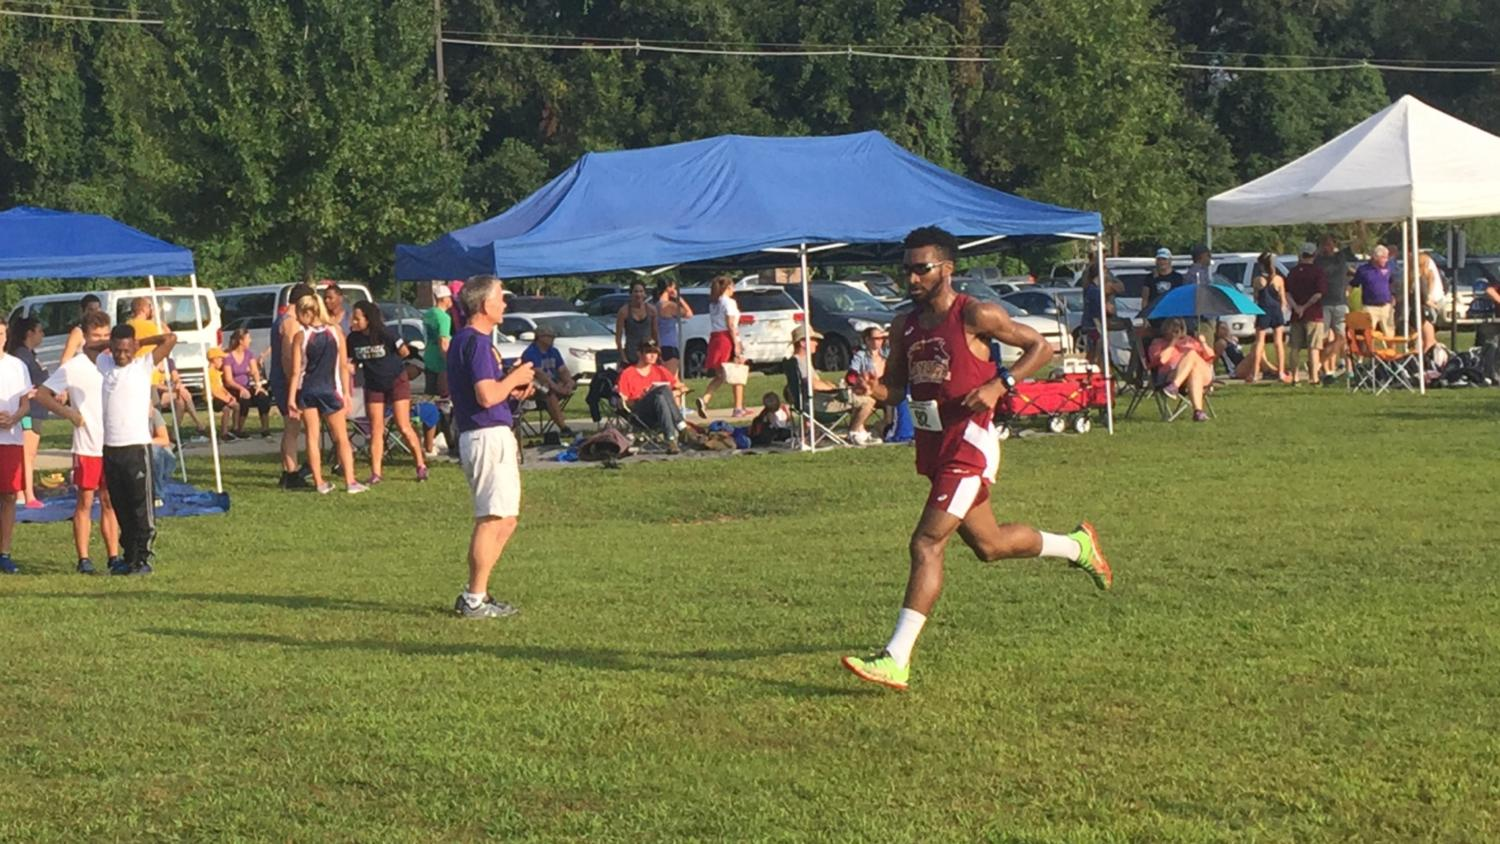 Cross country runner Brian Davis competes at the LSU Cross Country Festival on Sept. 16, 2017. The Loyola cross country team finished 7th overall at the event. Photo credit: Jc Canicosa